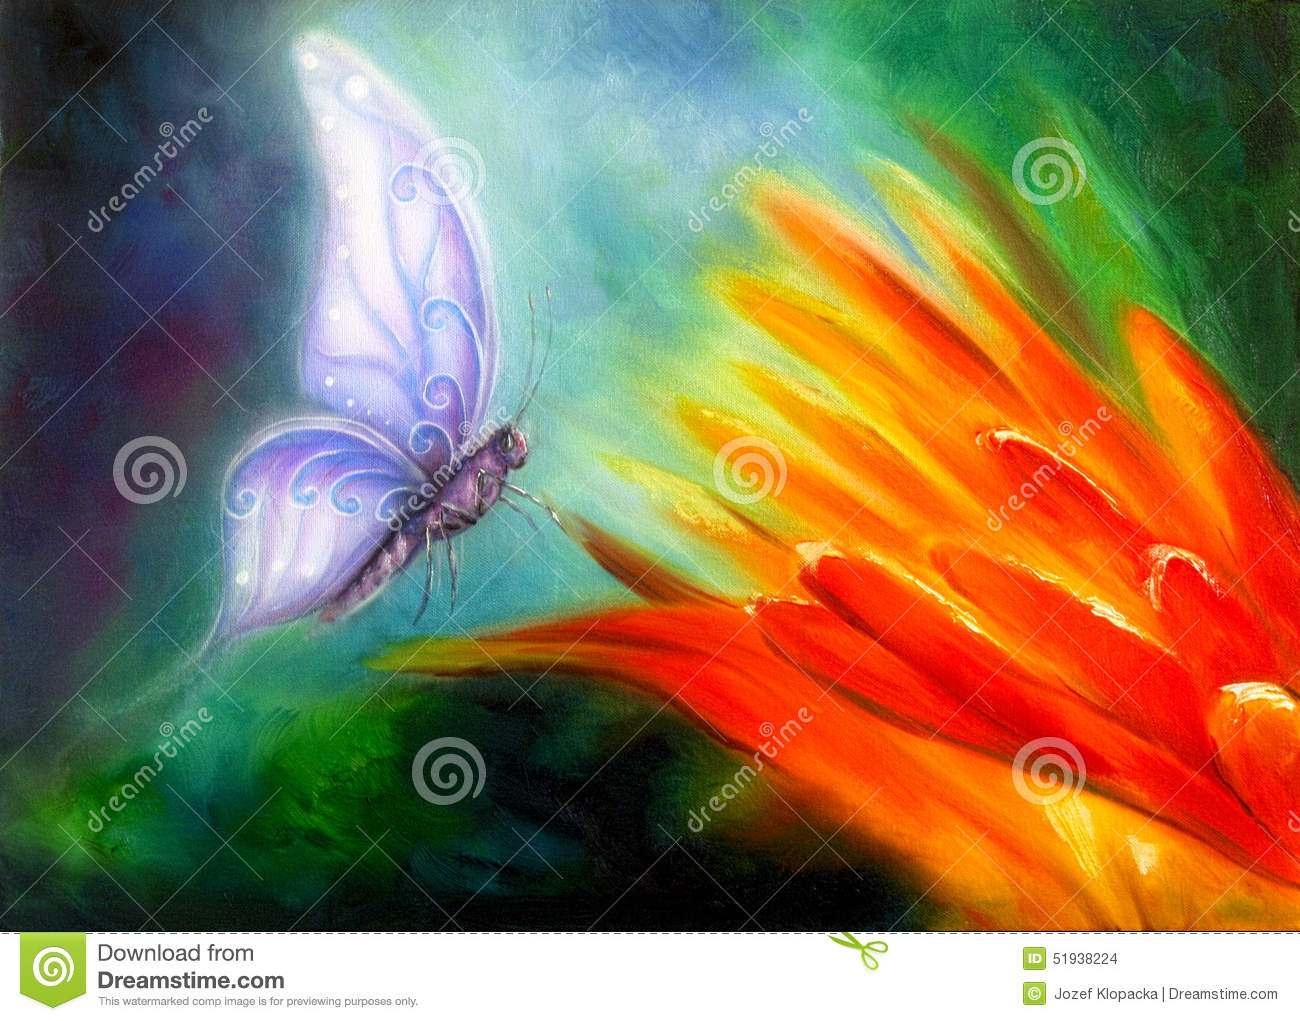 Butterfly Flying Towards A Bright Orange Flower Beautiful Detailed Colorful Oil Painting On Canvas Stock Illustration